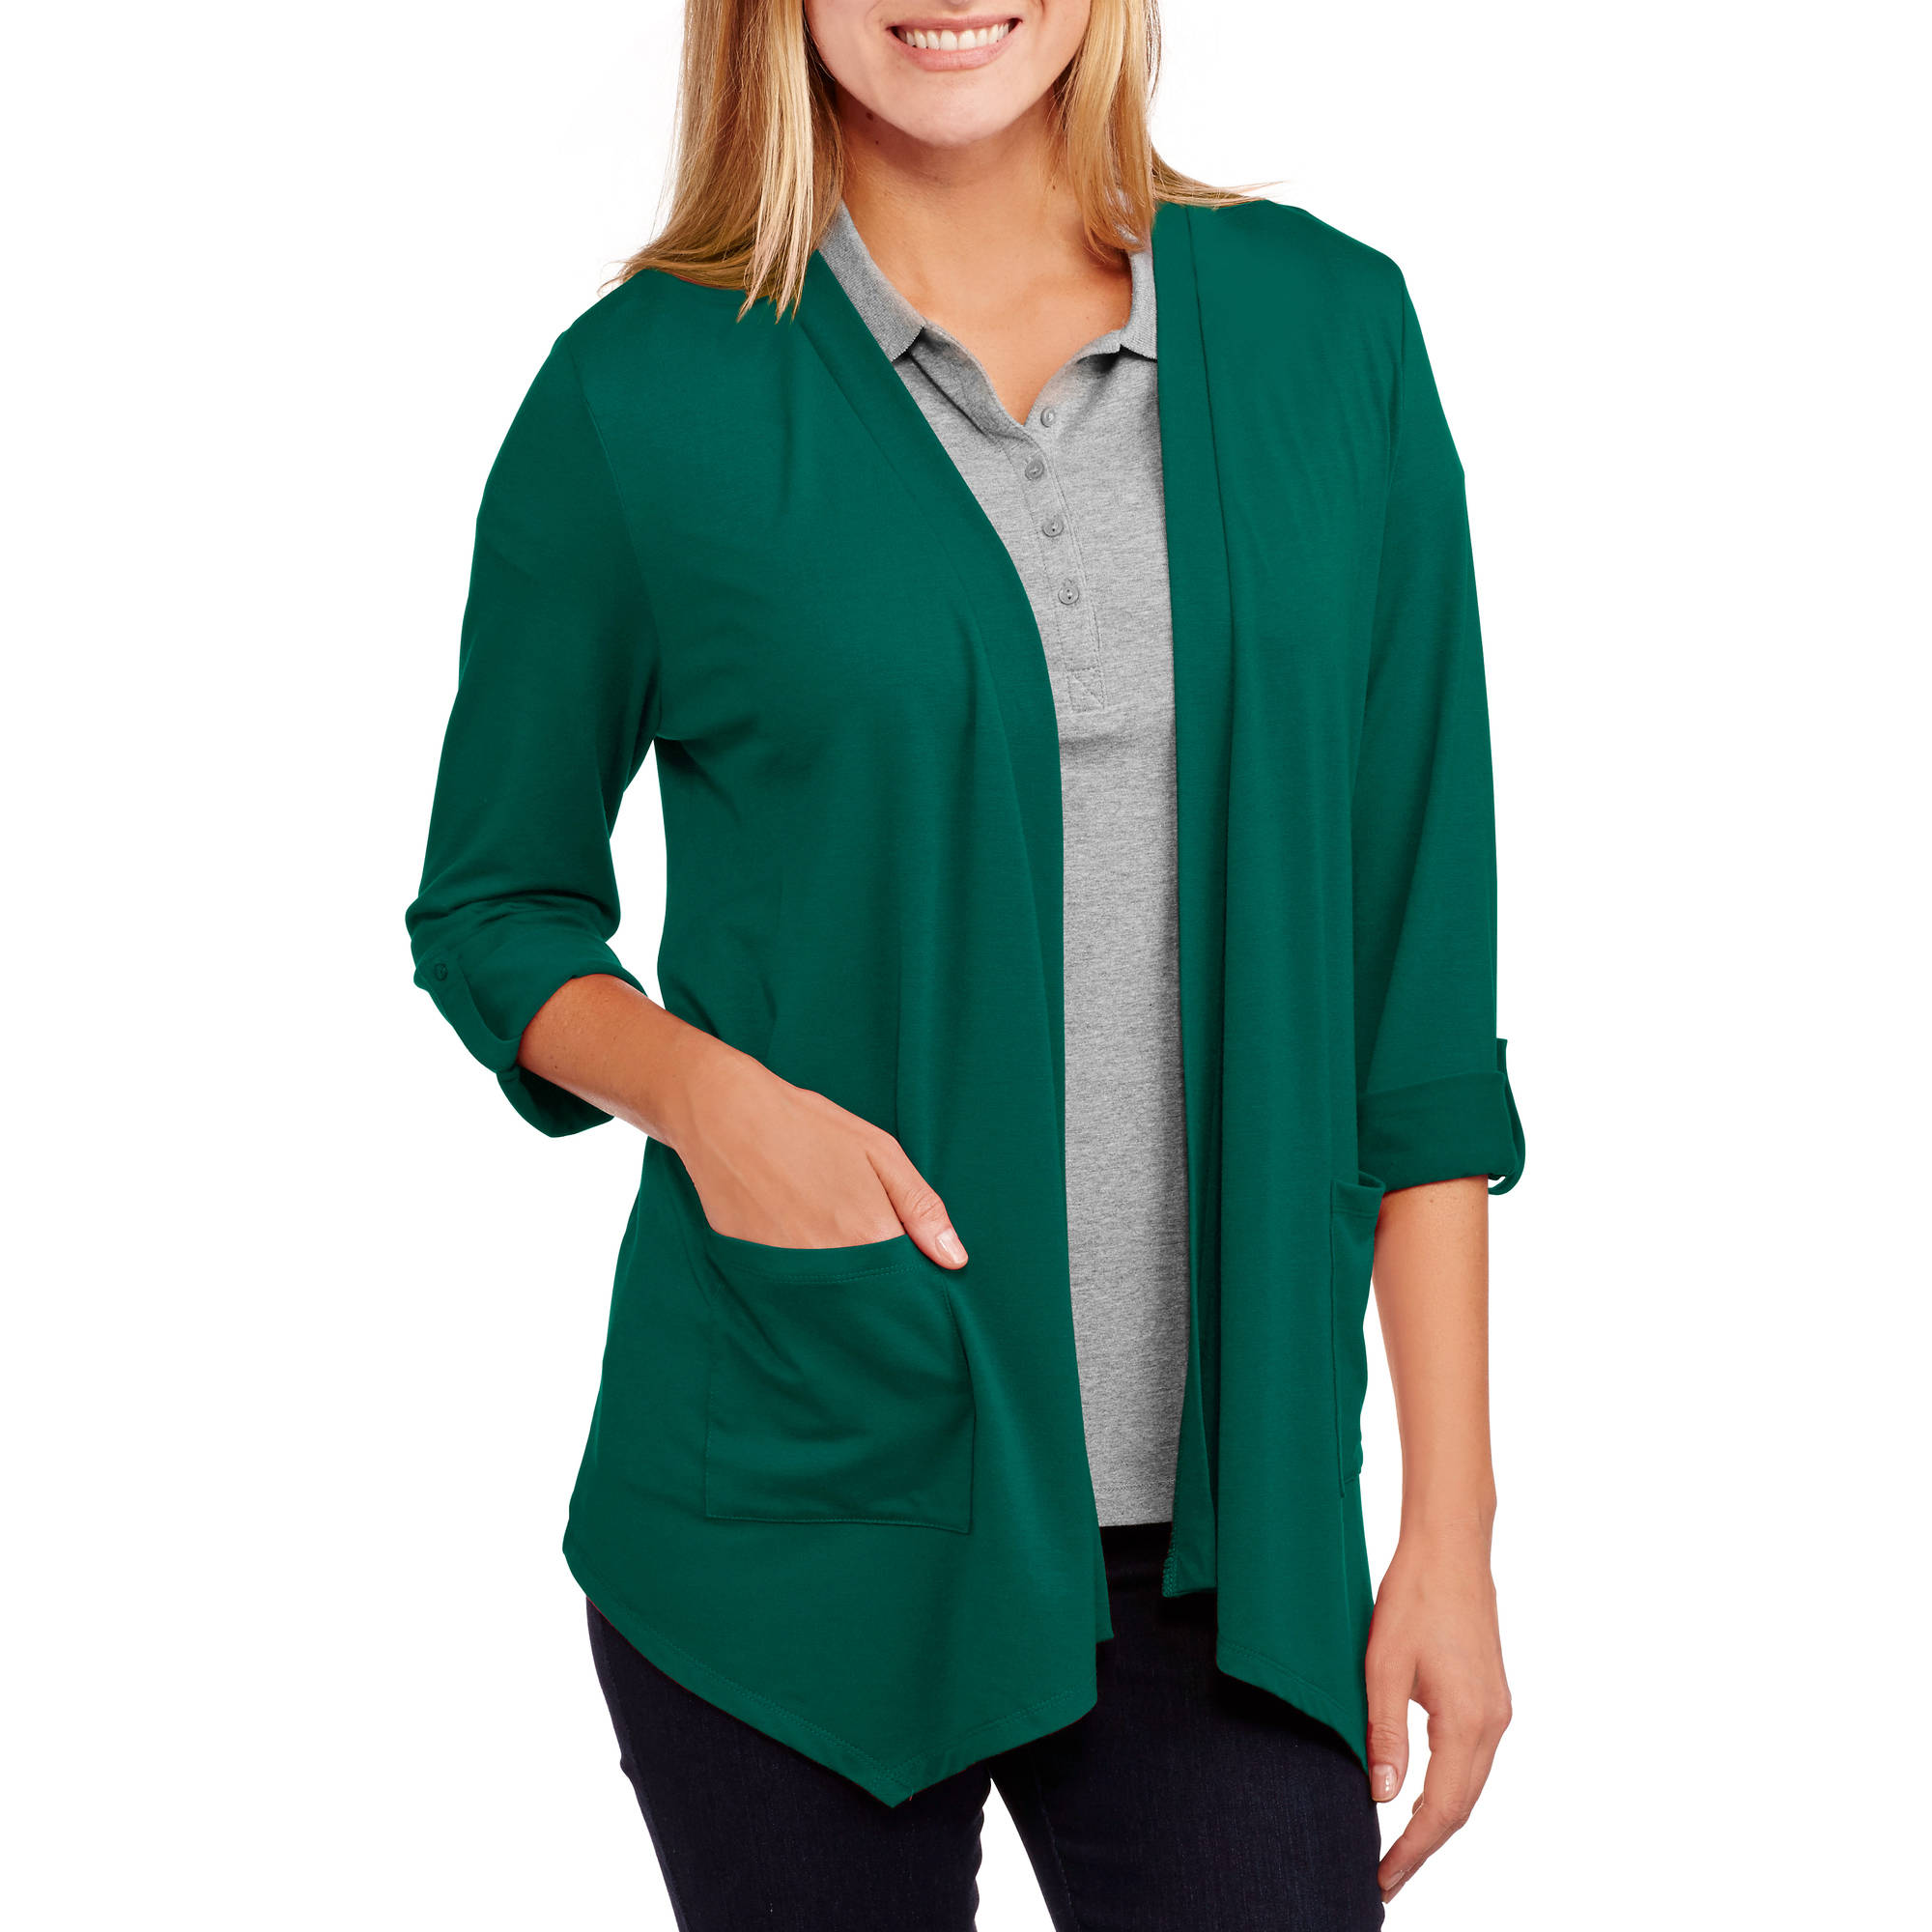 Concepts Women's Soft Knit Flyaway Cardigan